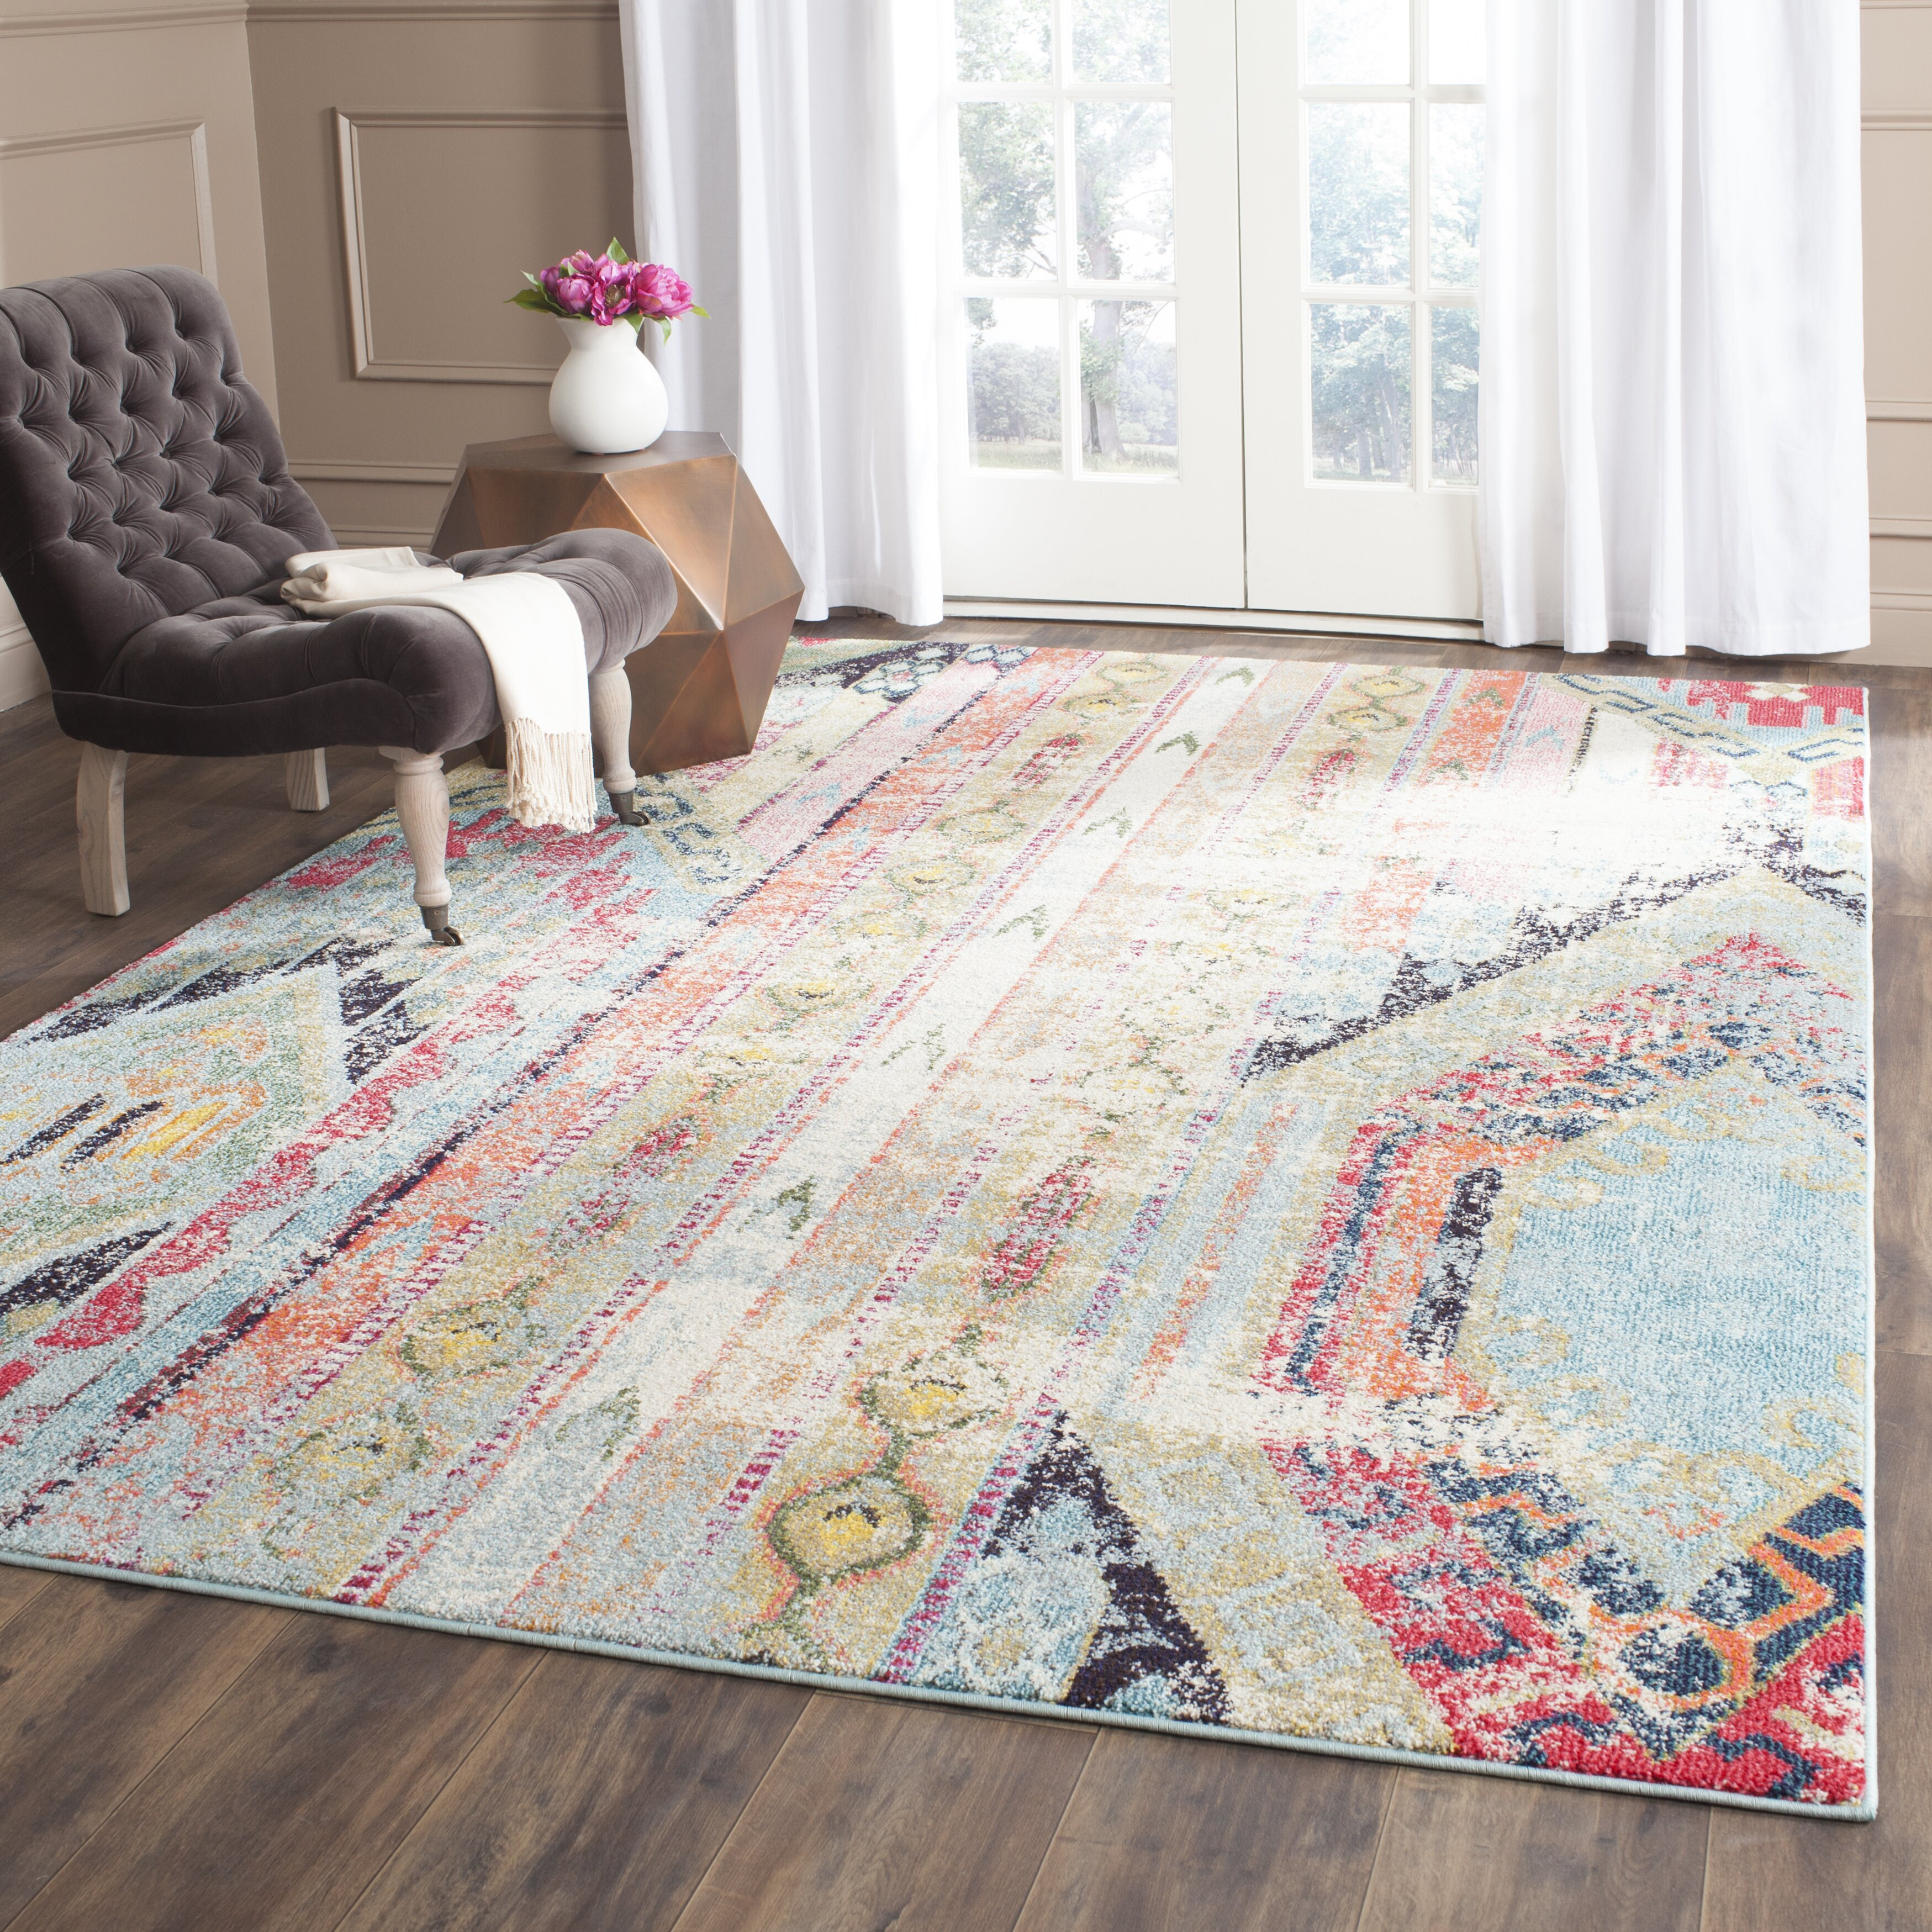 Bungalow Area Rugs On Now 24 Off Rose Roshan